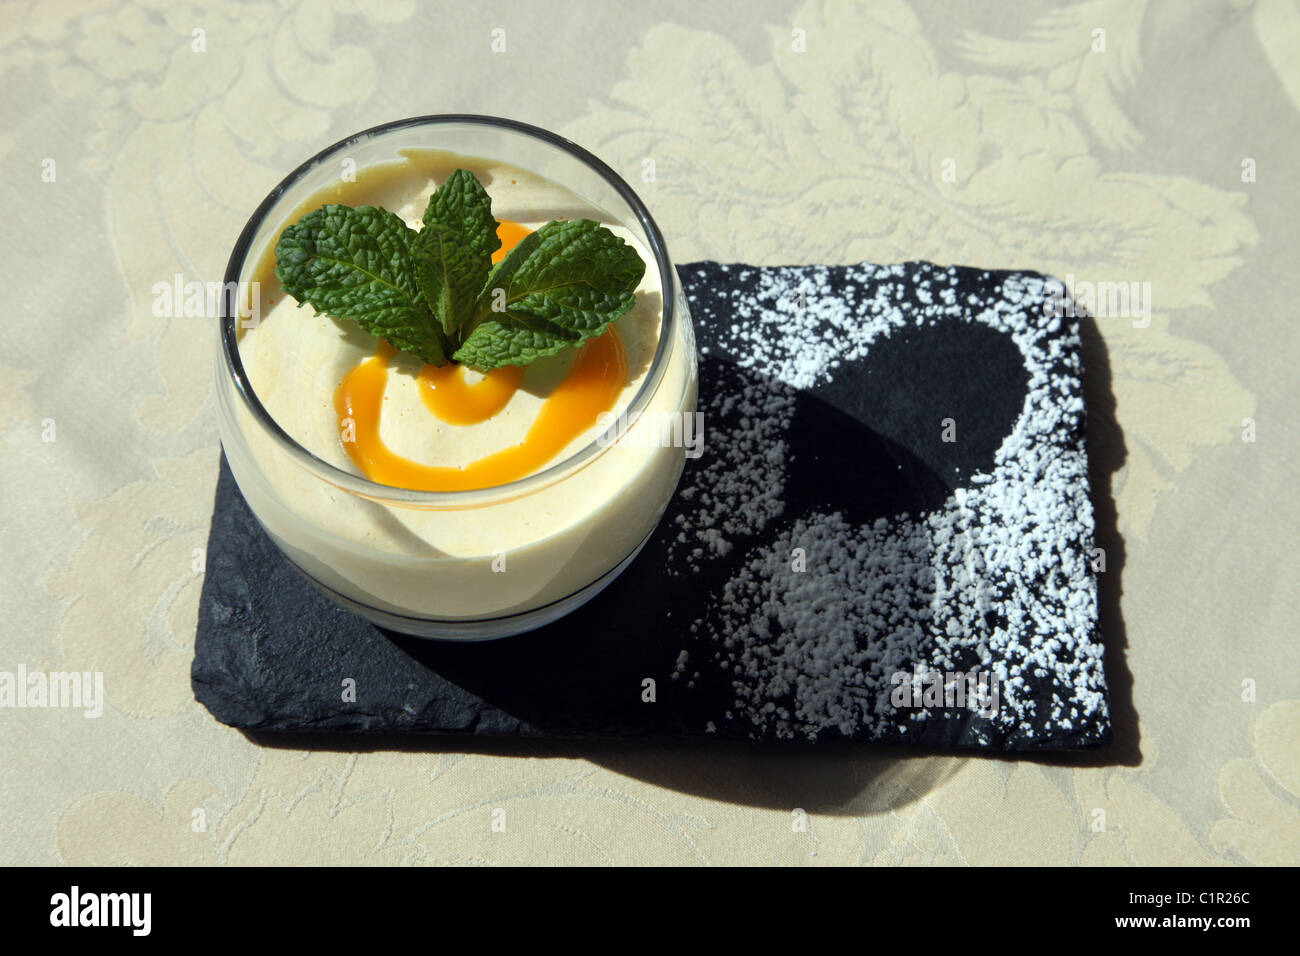 Mango Mousse, pudding served at Abrigo da Montanha Restaurant, Figueira da Foz, Portugal - Stock Image